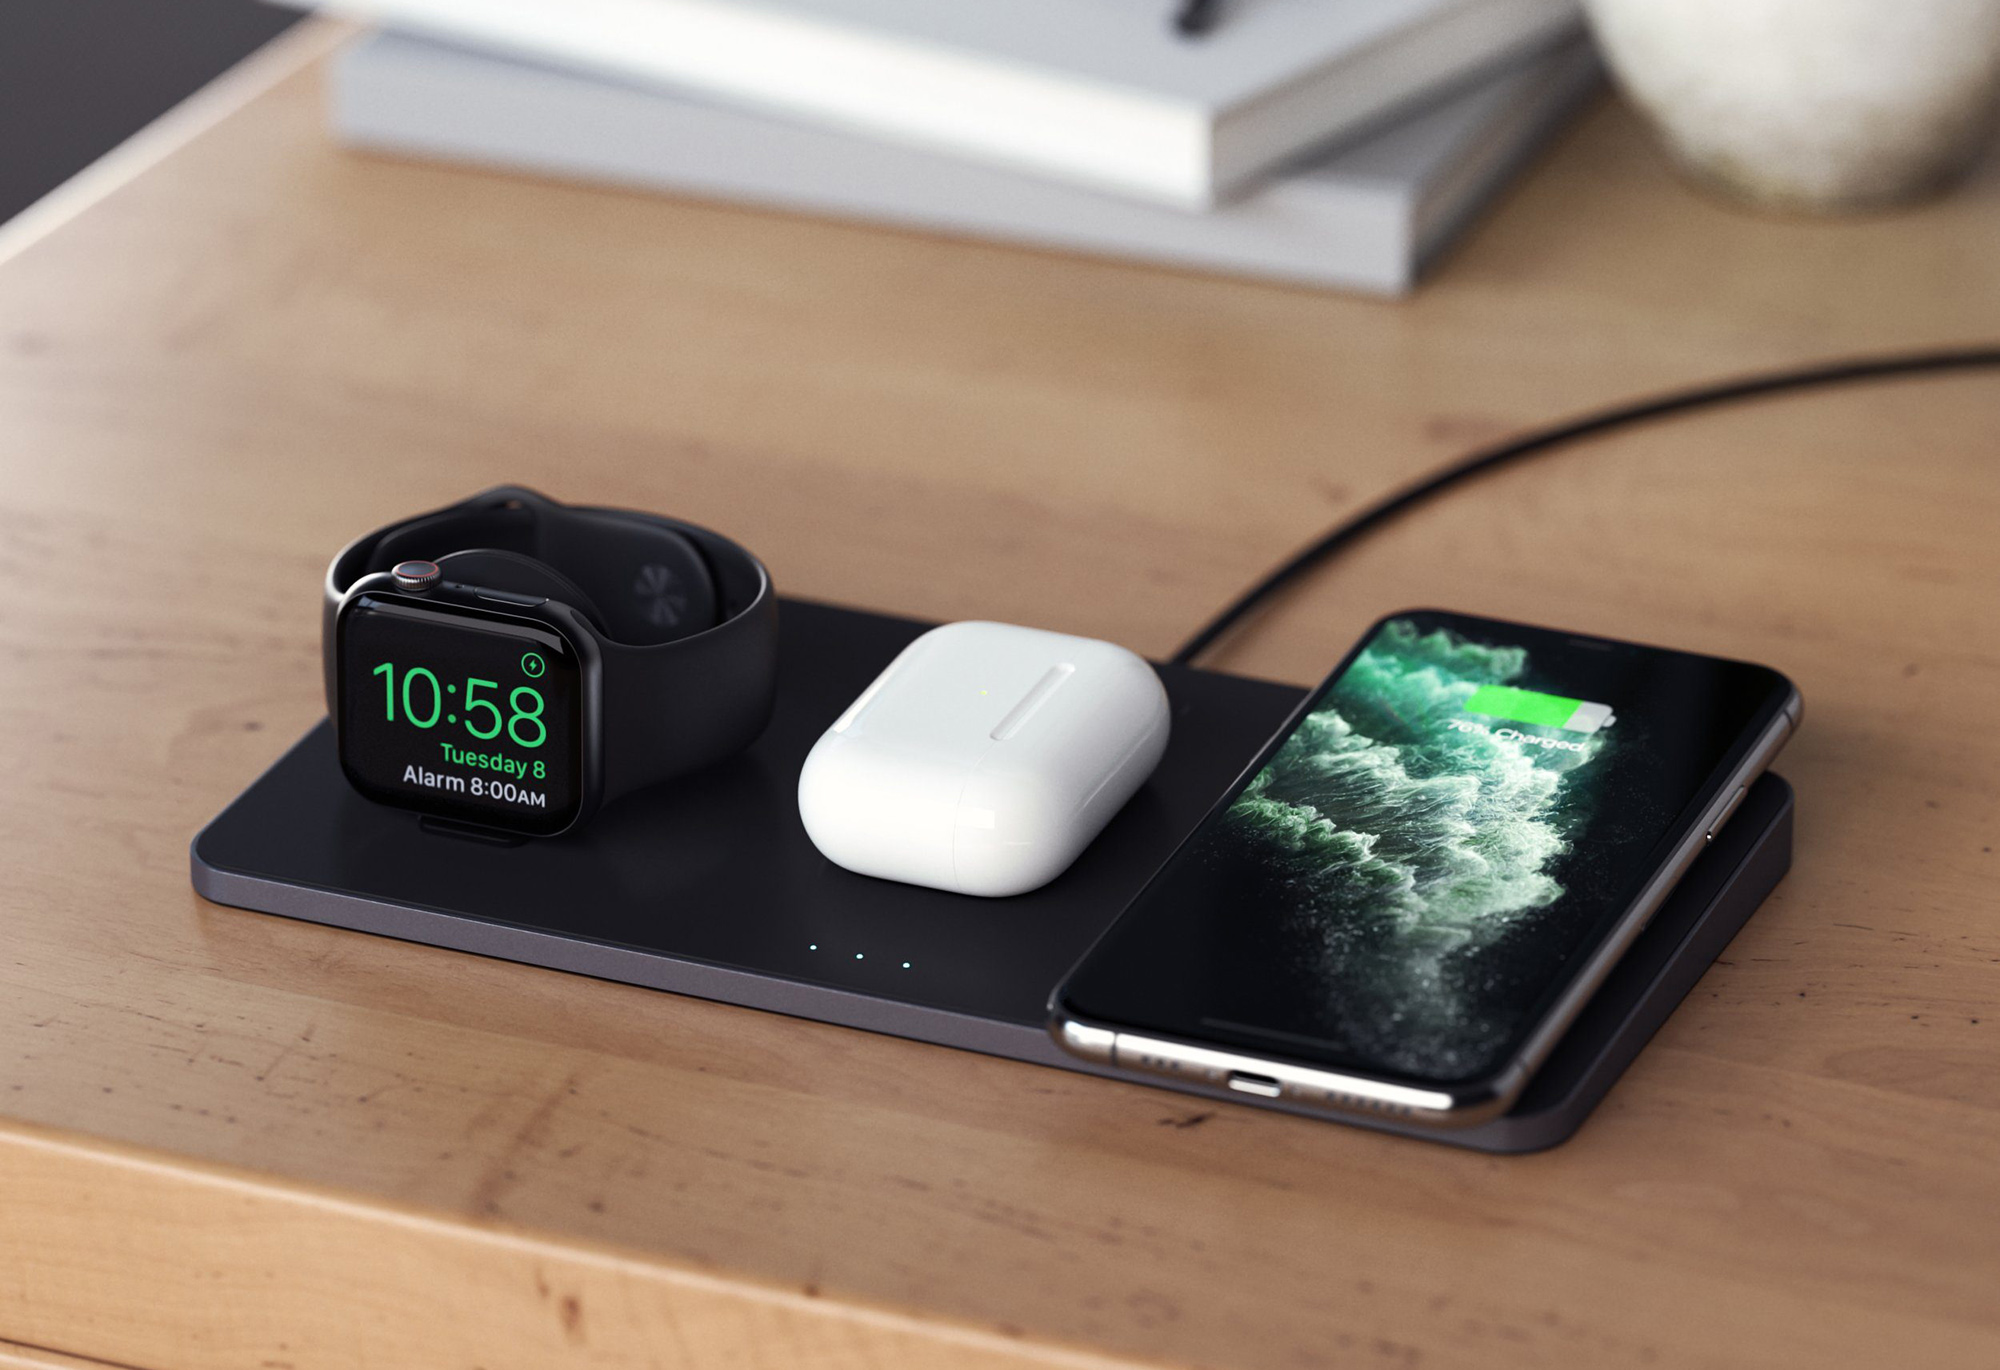 MacRumors Giveaway: Win a Trio Wireless Charging Pad From Satechi - MacRumors